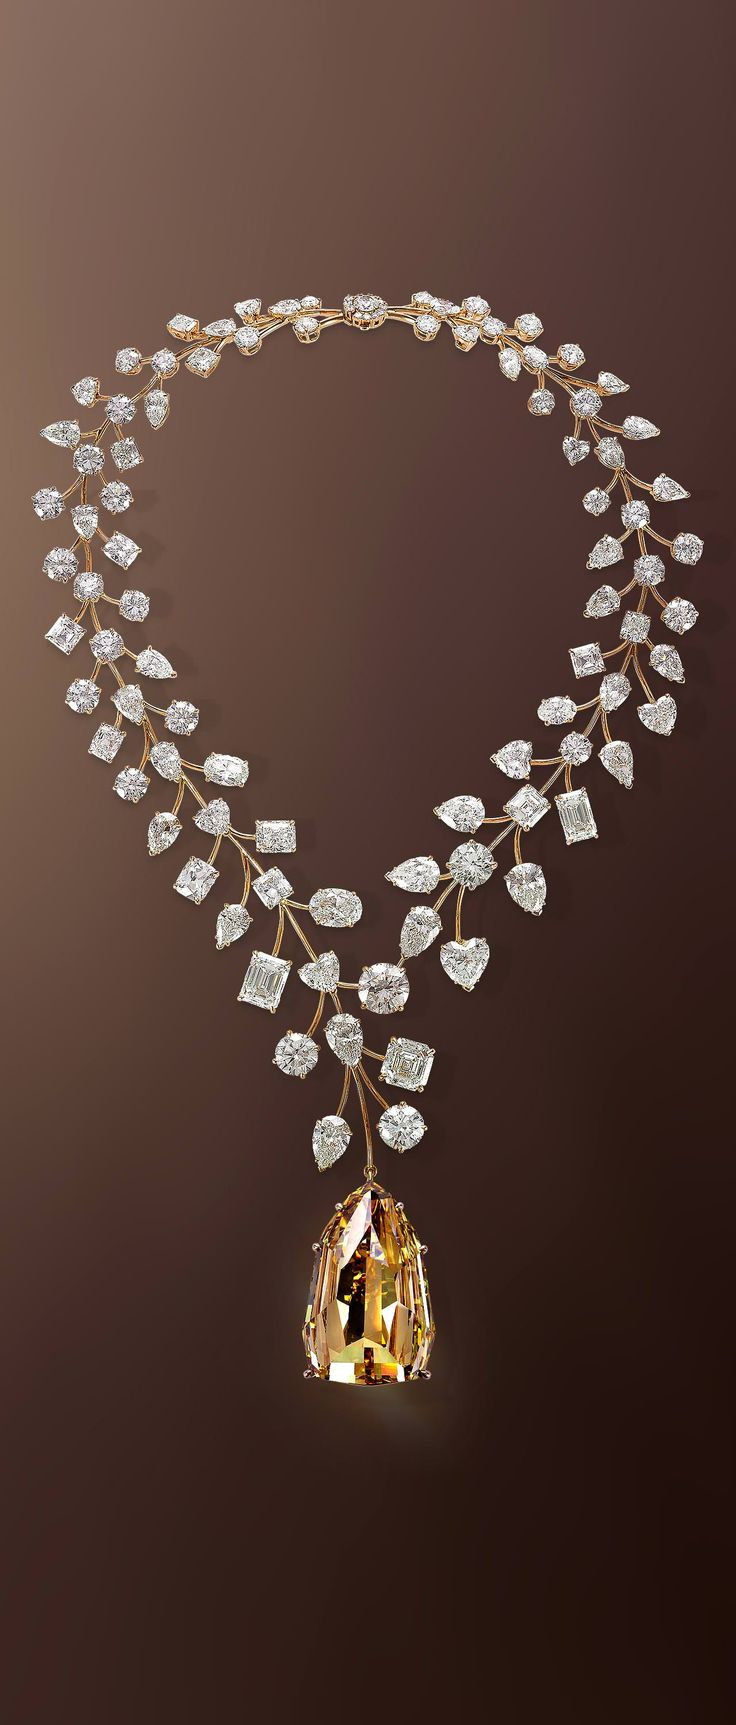 The Mouawad L'Incomparable Diamond Necklace Features the Flawless 407.48-Carat Yellow Diamond, Suspended from a White Diamond Necklace Intertwined by 18-Karat Rose Gold Branchlets